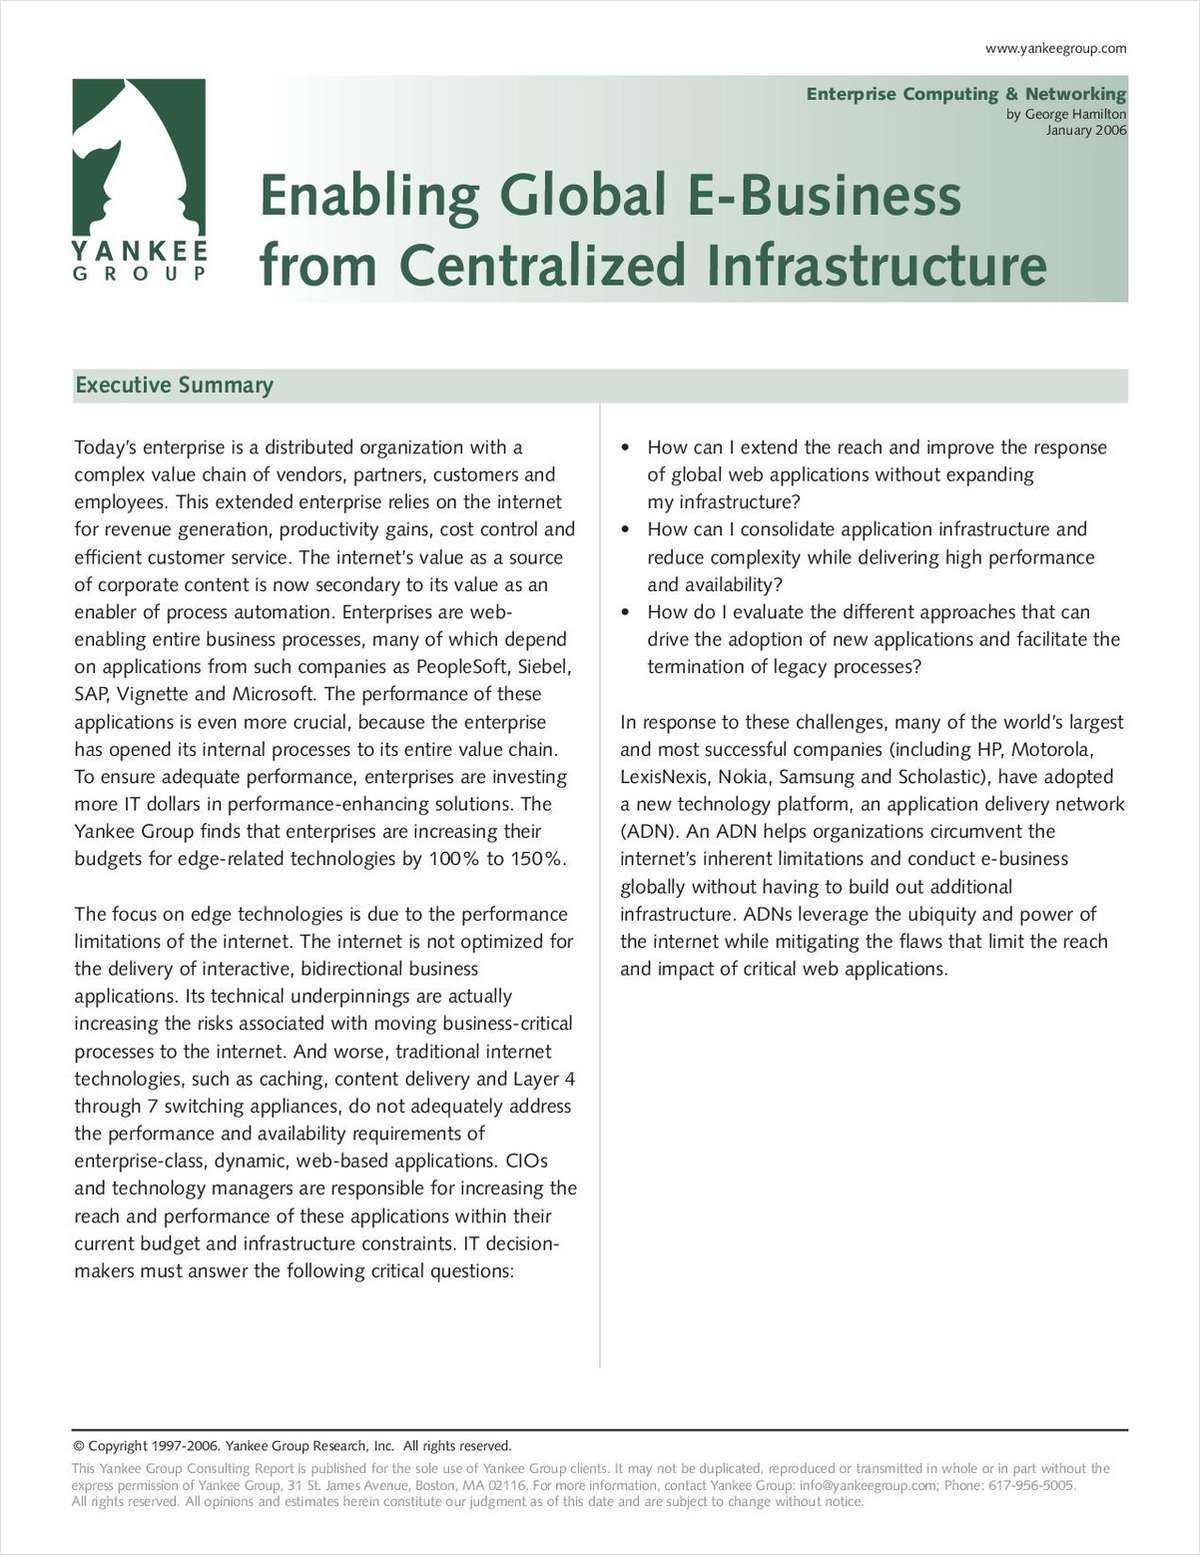 Enabling Global eBusiness from a Centralized Infrastructure